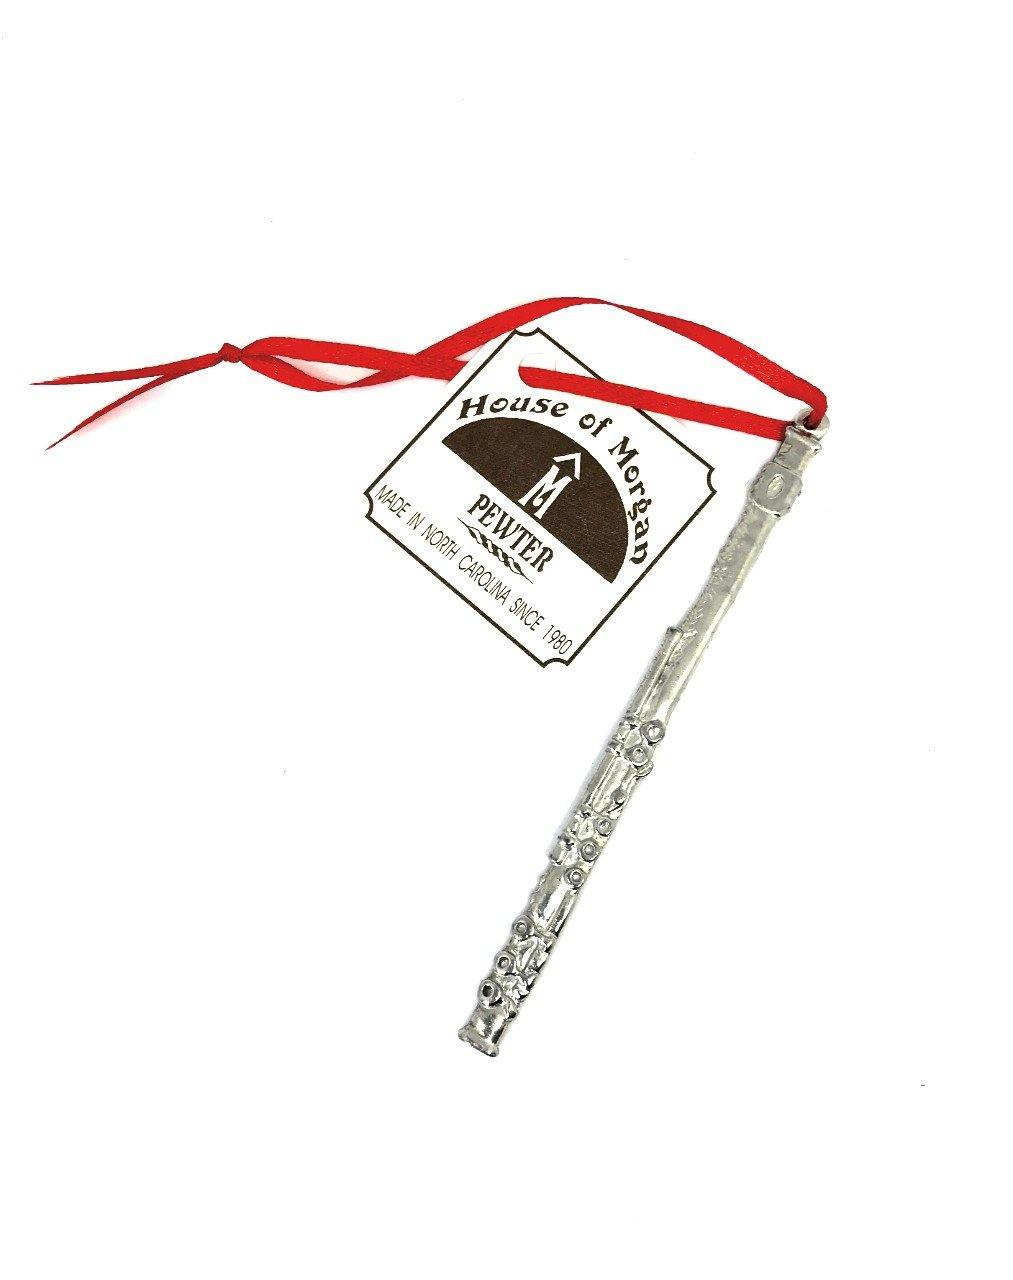 526 Flute Musical Teacher Student Instrument Keepsake Holiday Ornament Pewter - House of Morgan Pewter